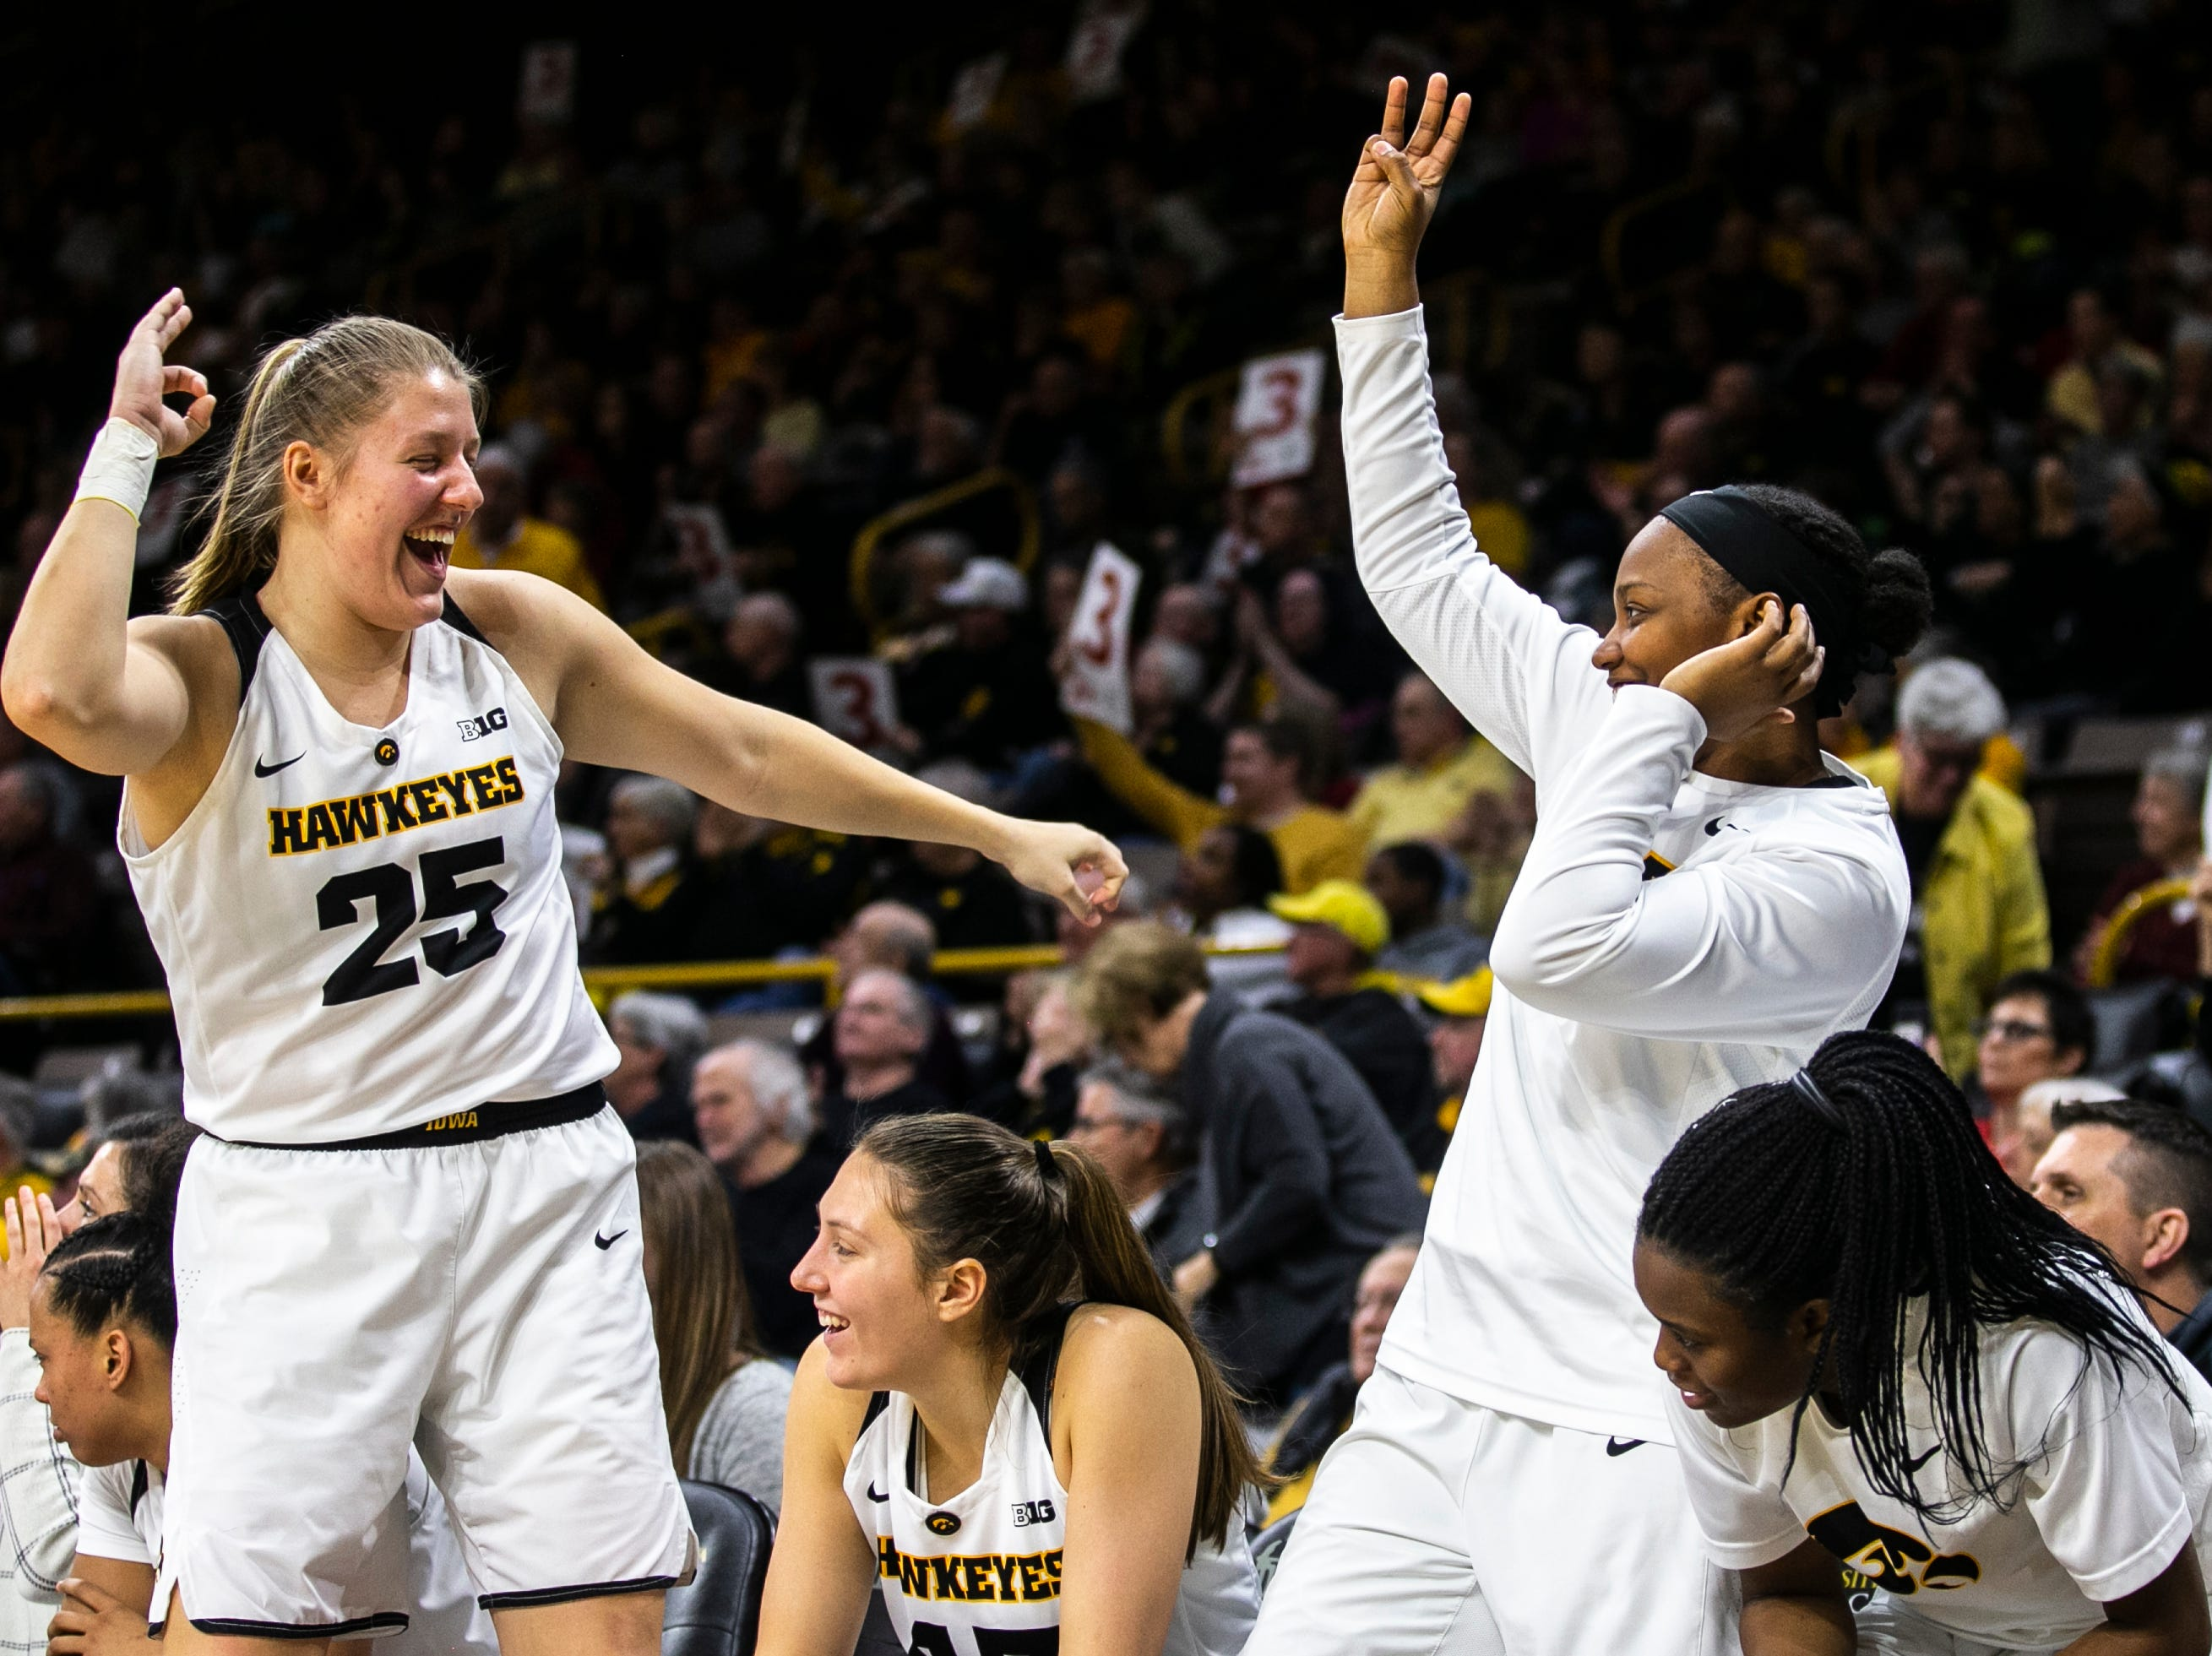 Iowa's Monika Czinano (25) celebrates on the bench with teammates during a NCAA Big Ten Conference women's basketball game on Sunday, Jan. 27, 2019, at Carver-Hawkeye Arena in Iowa City, Iowa.